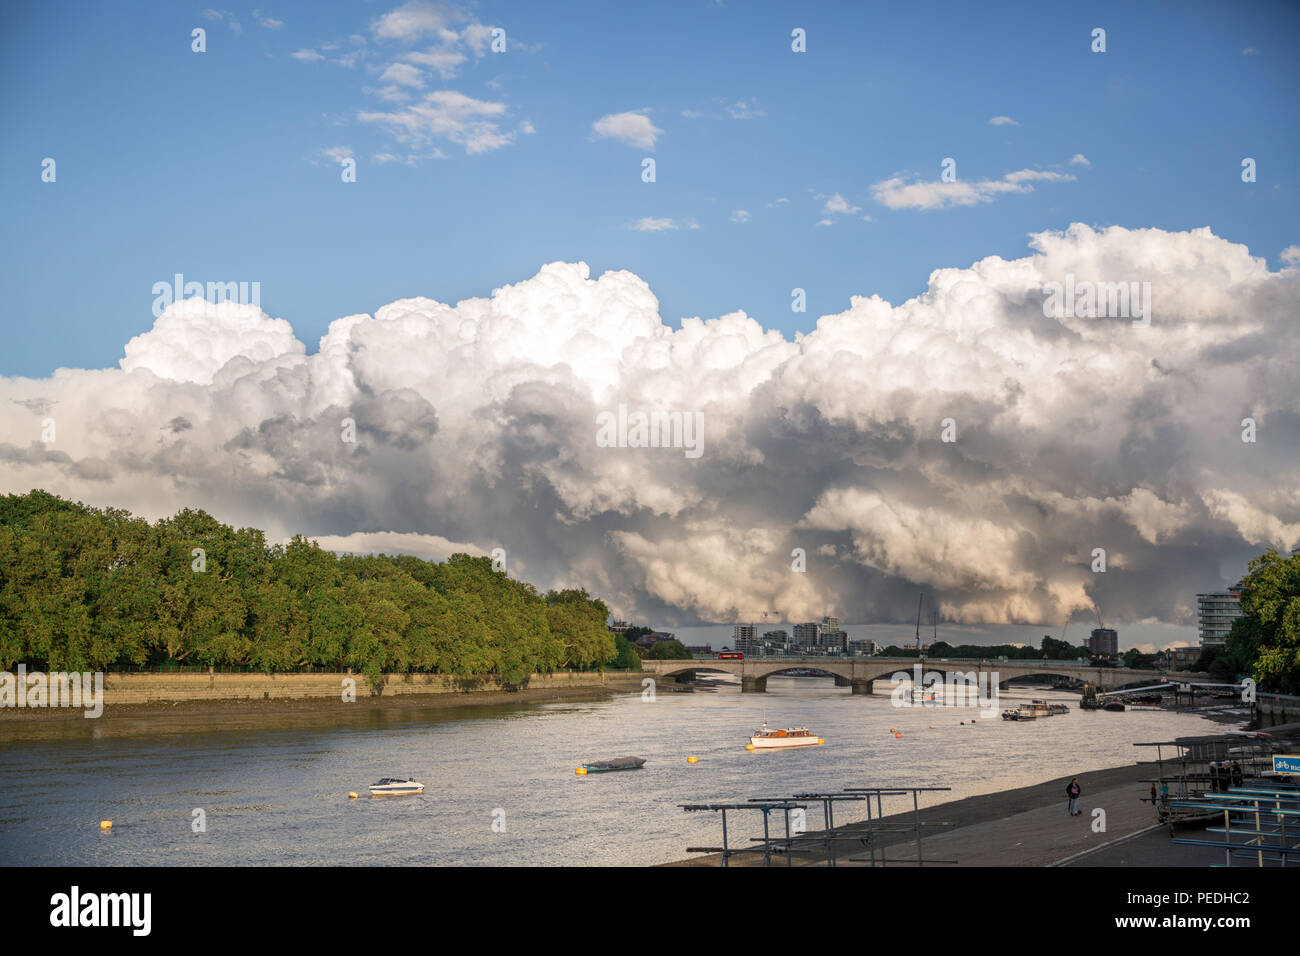 Huge cumulonimbus cloud (big fluffy storm cloud) over the River Thames in South West London (near Putney and Fulham) - Stock Image